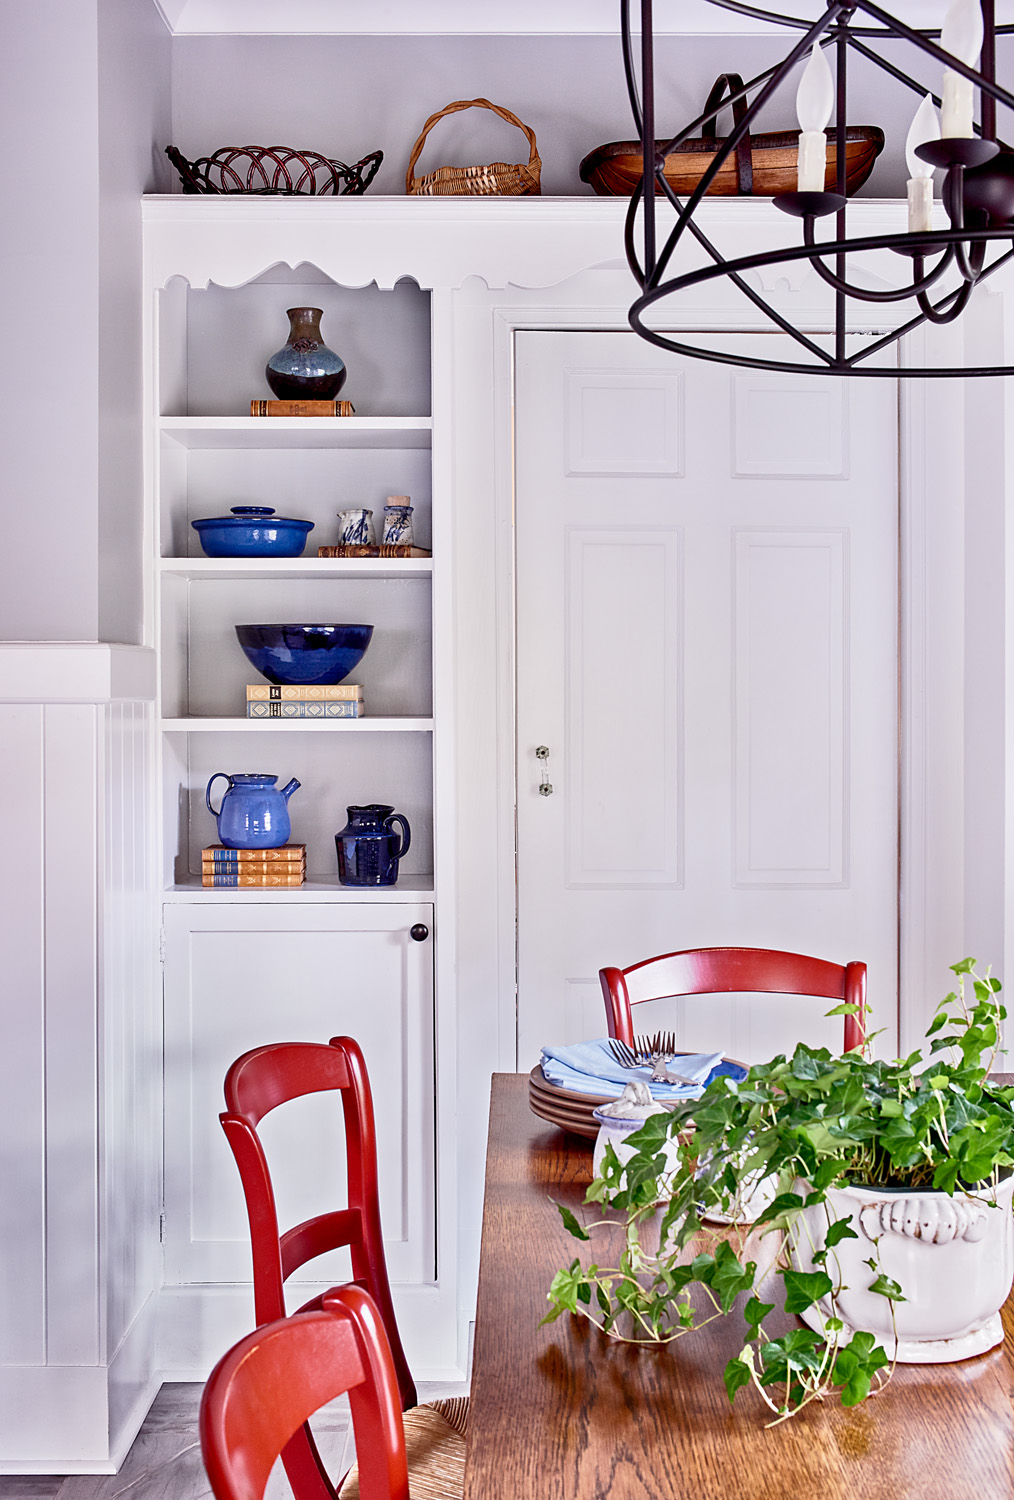 This Old House feature breakfast area with red chairs and built-in cabinets